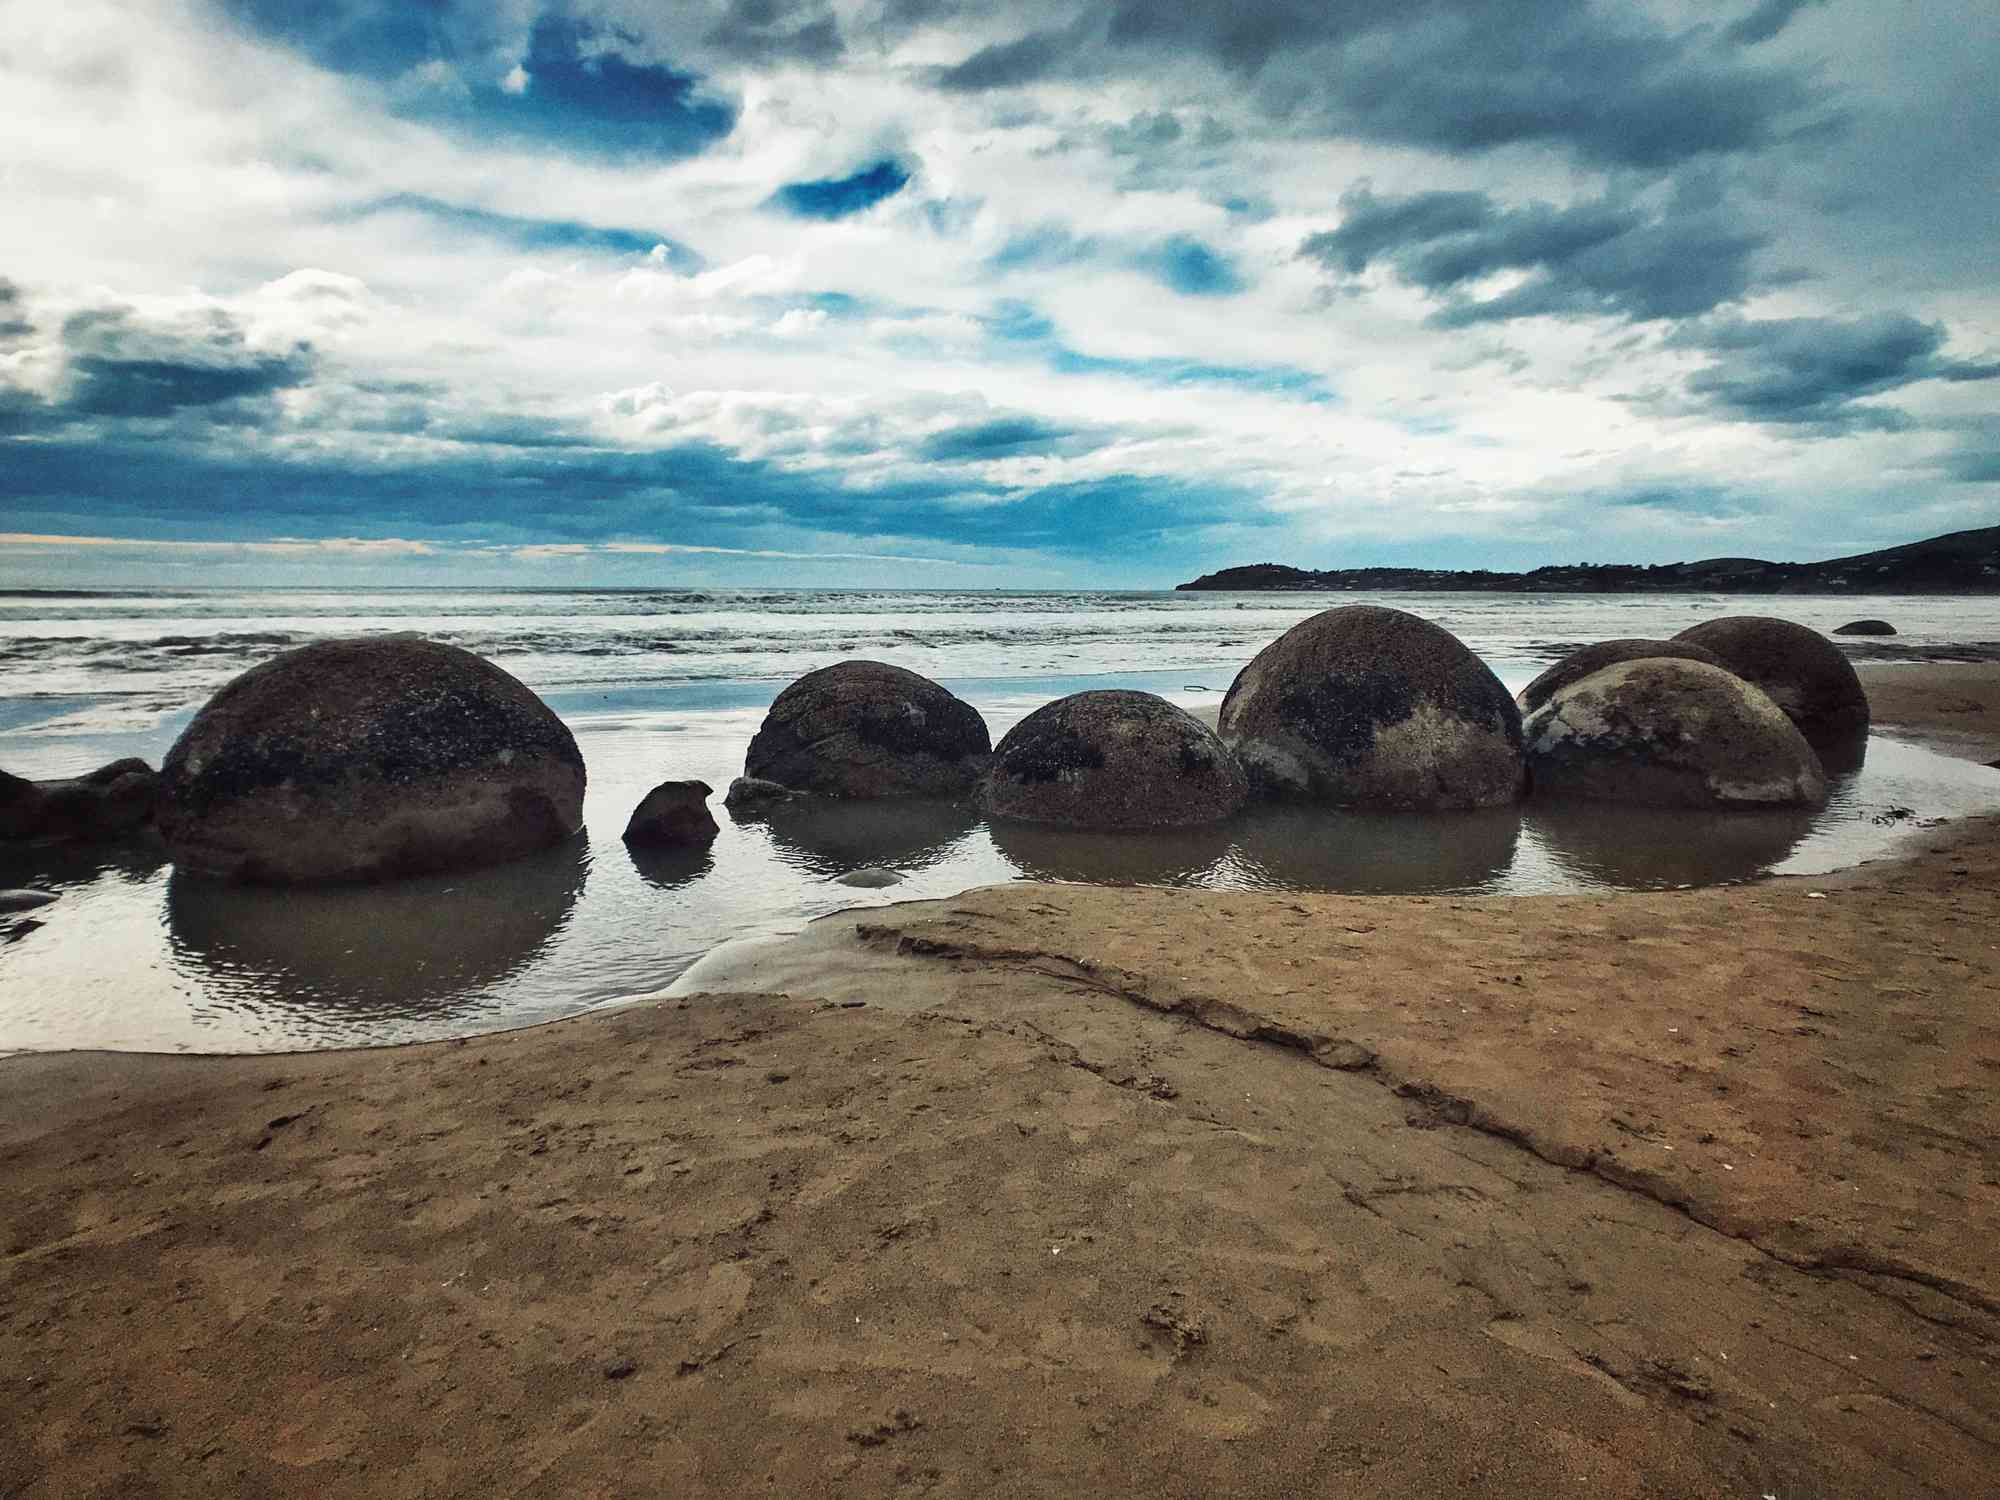 large stone boulders sitting on a beach with sand and sea